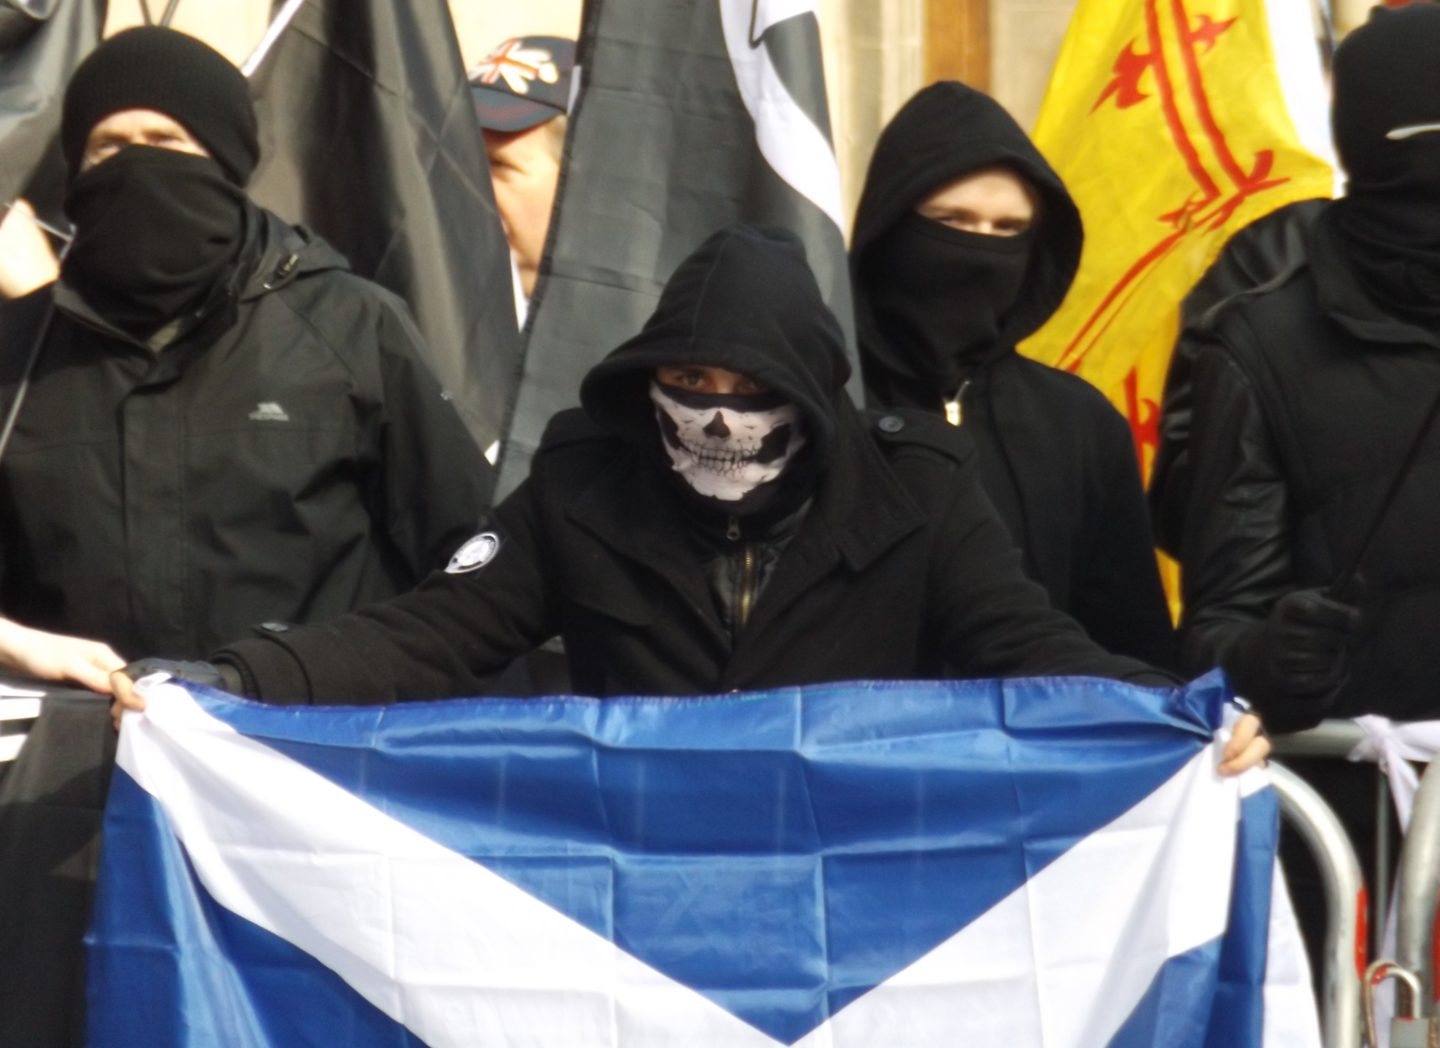 Scottish Defence League